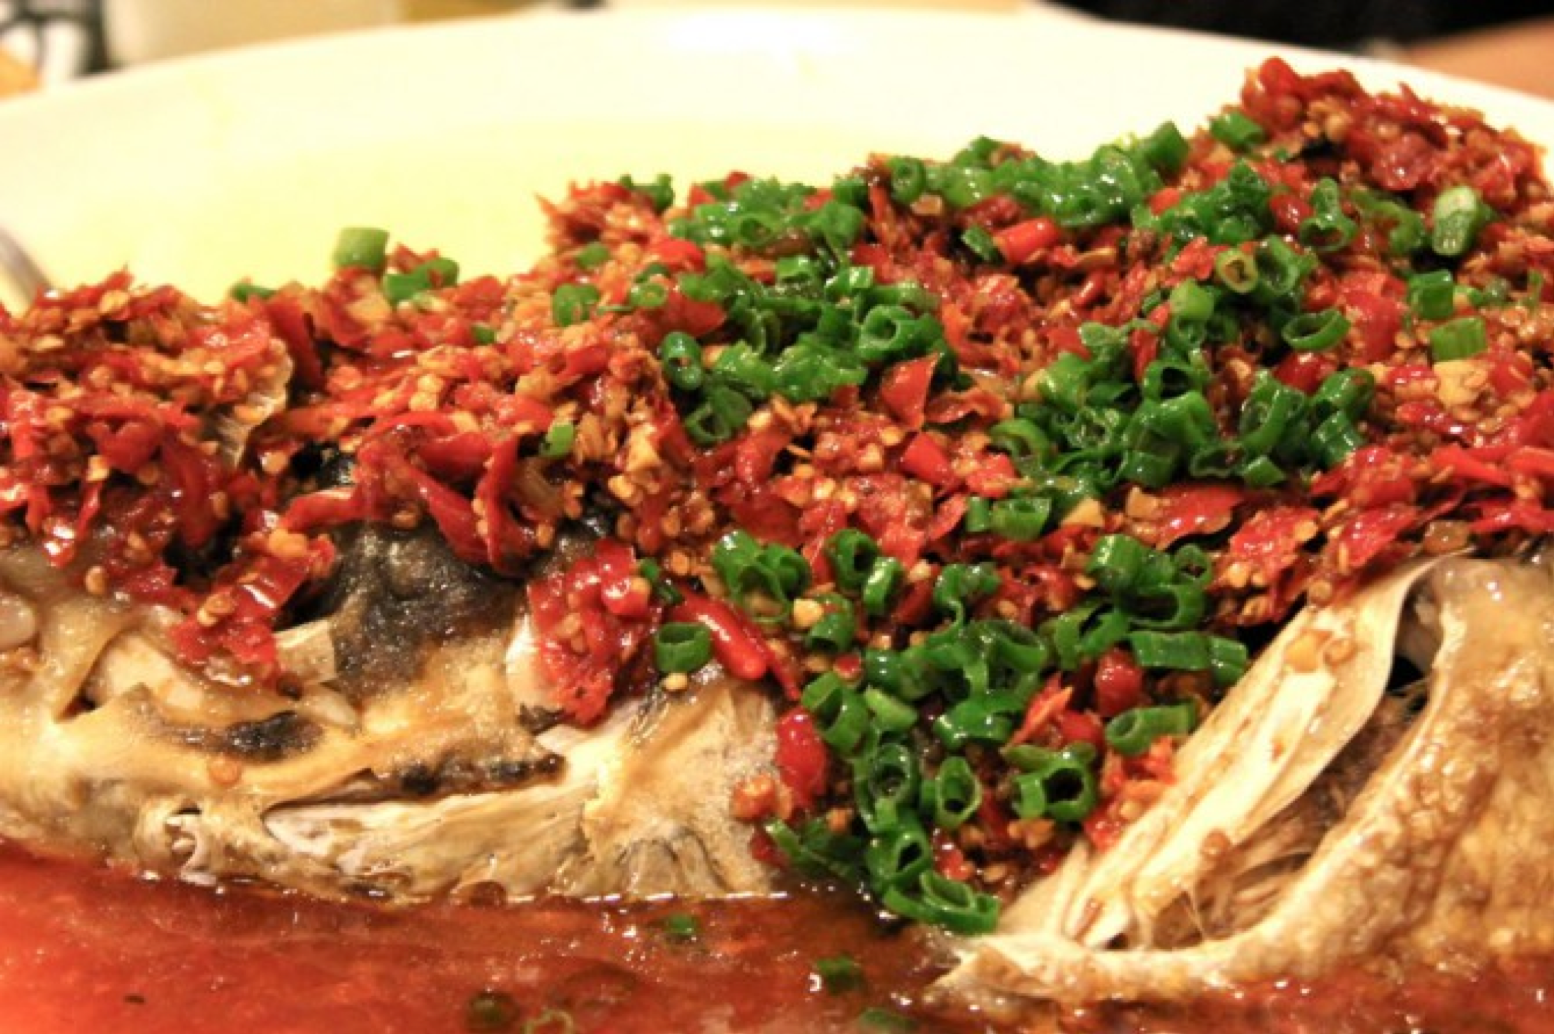 Fish dish at Bushuair Restaurant